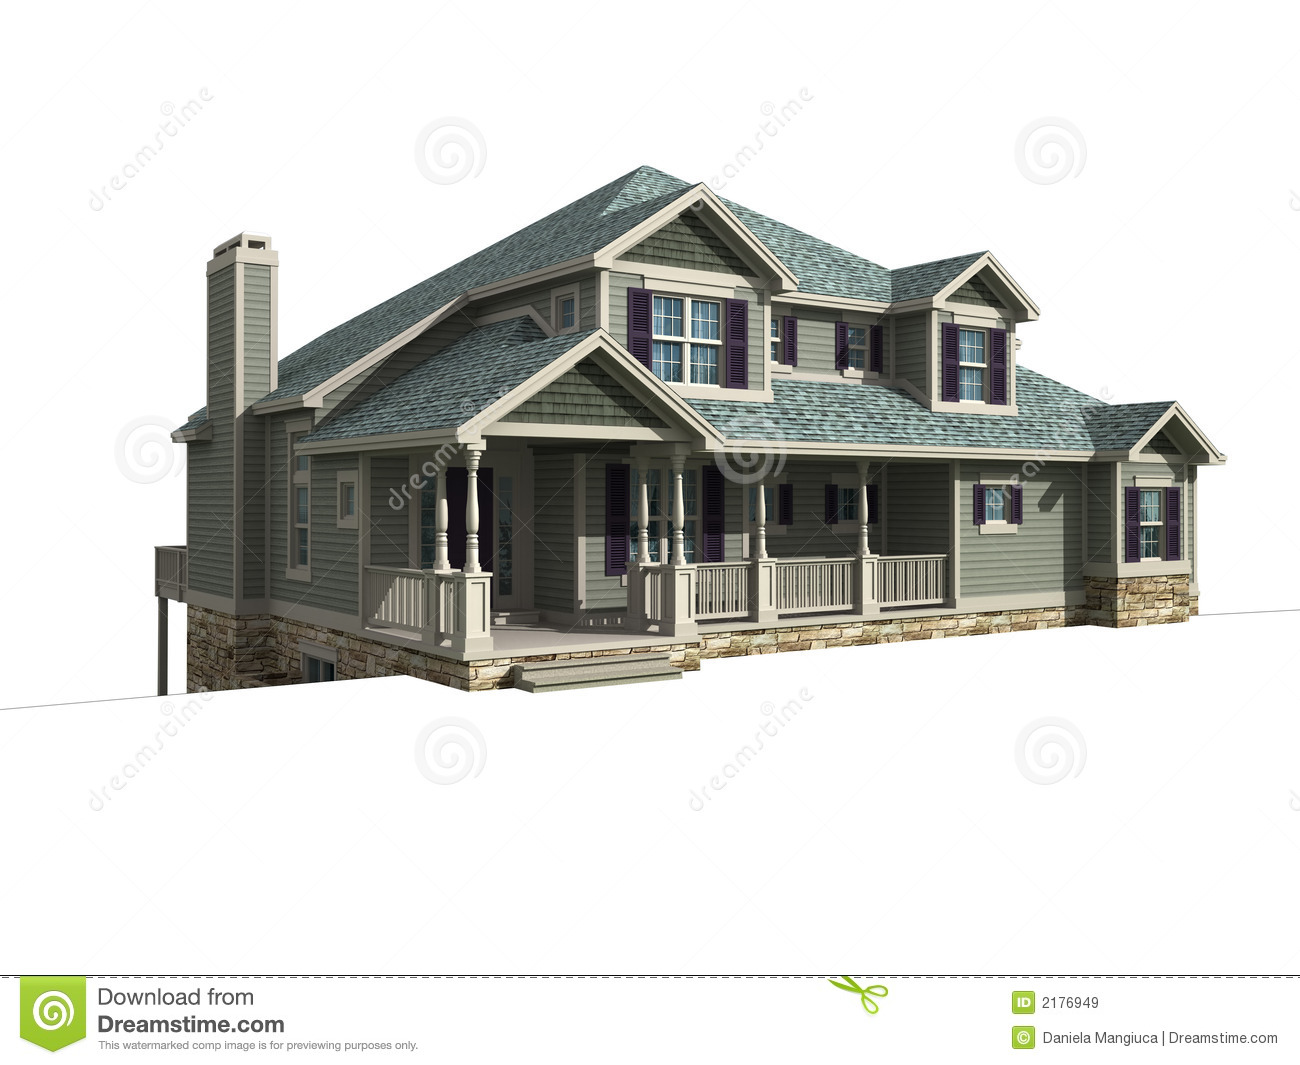 3d model of one level house royalty free stock images House 3d model